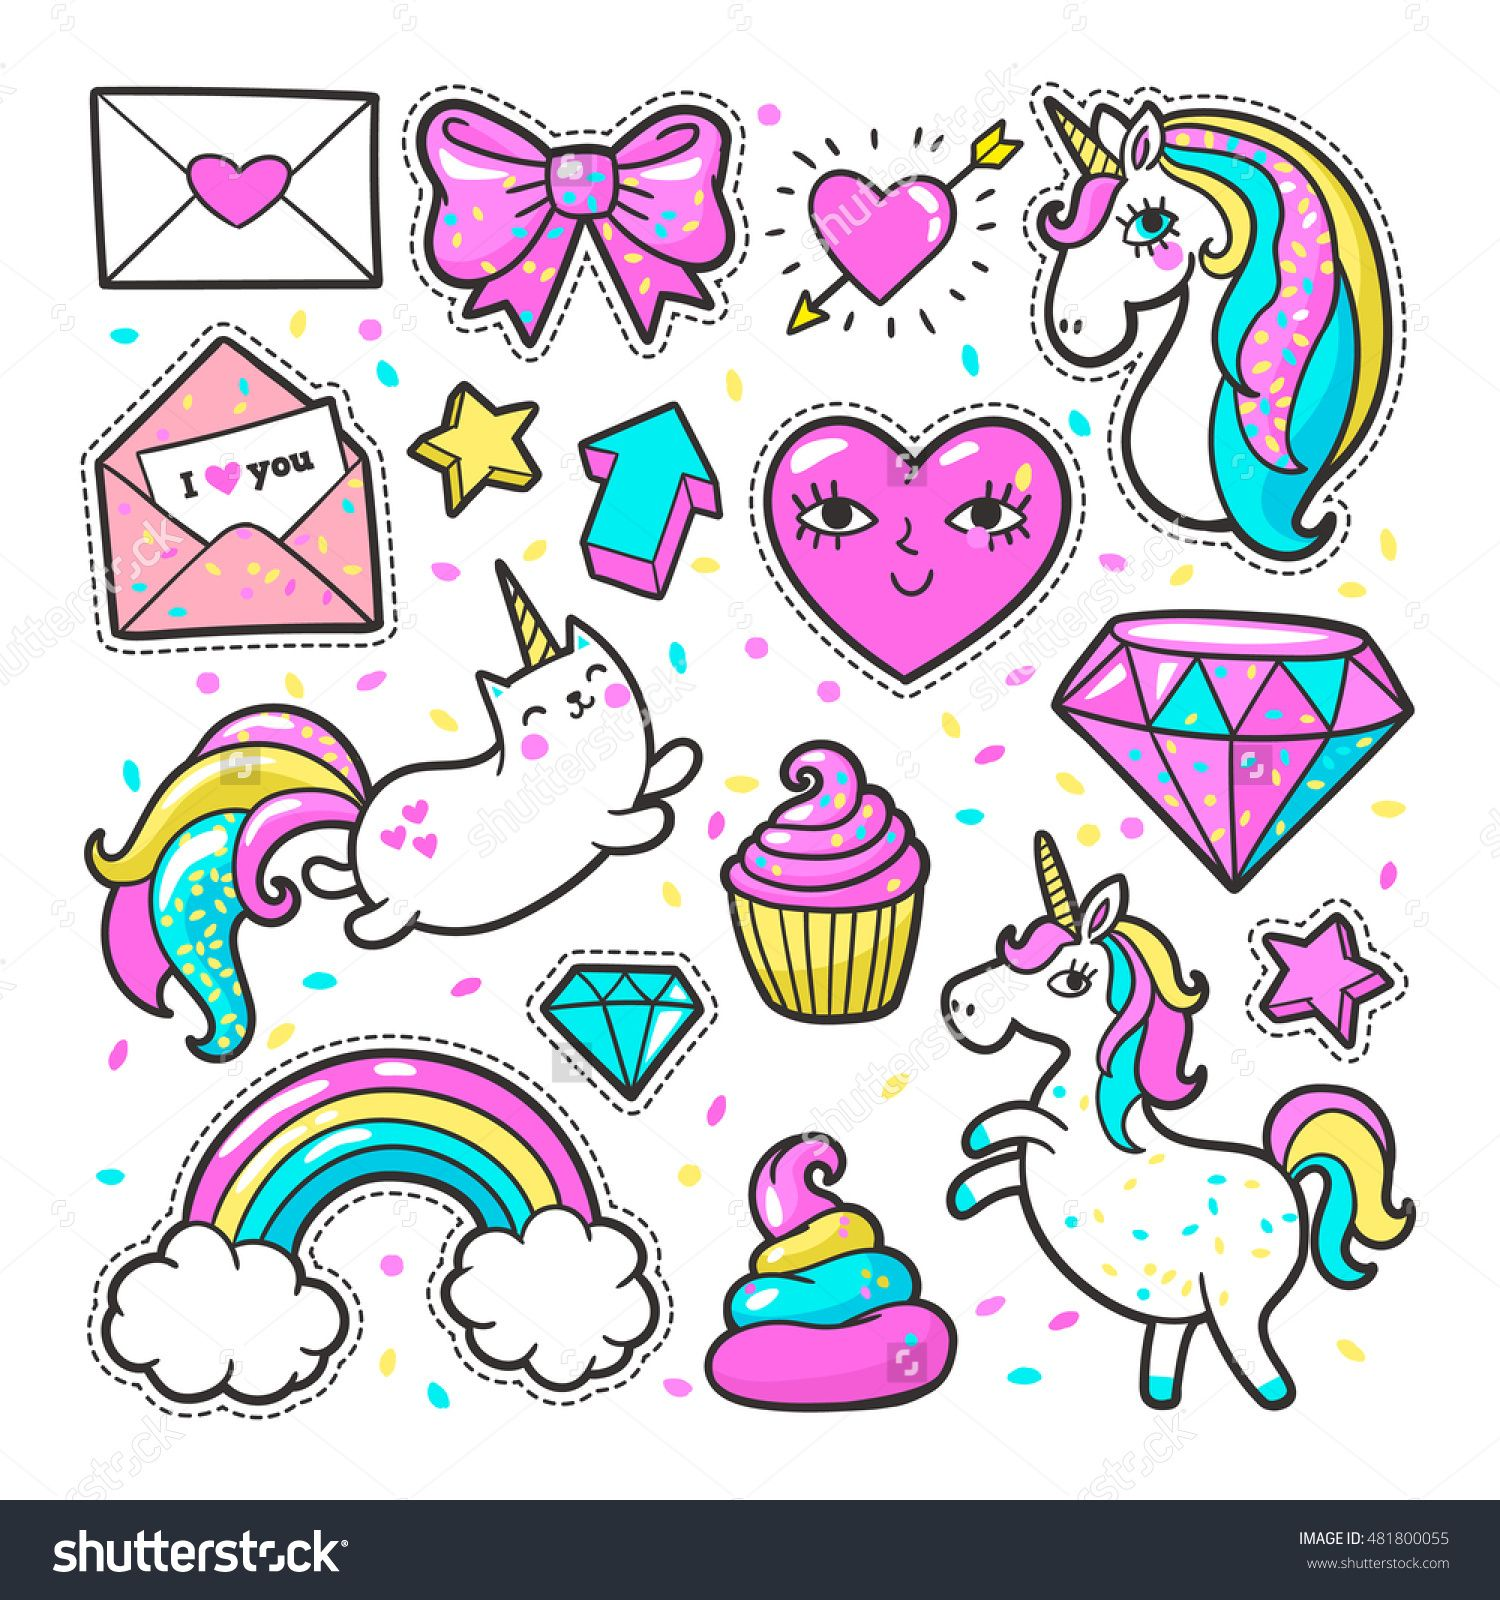 Fashion Patch Badges With Unicorns, Hearts, Cats, Rainbow.